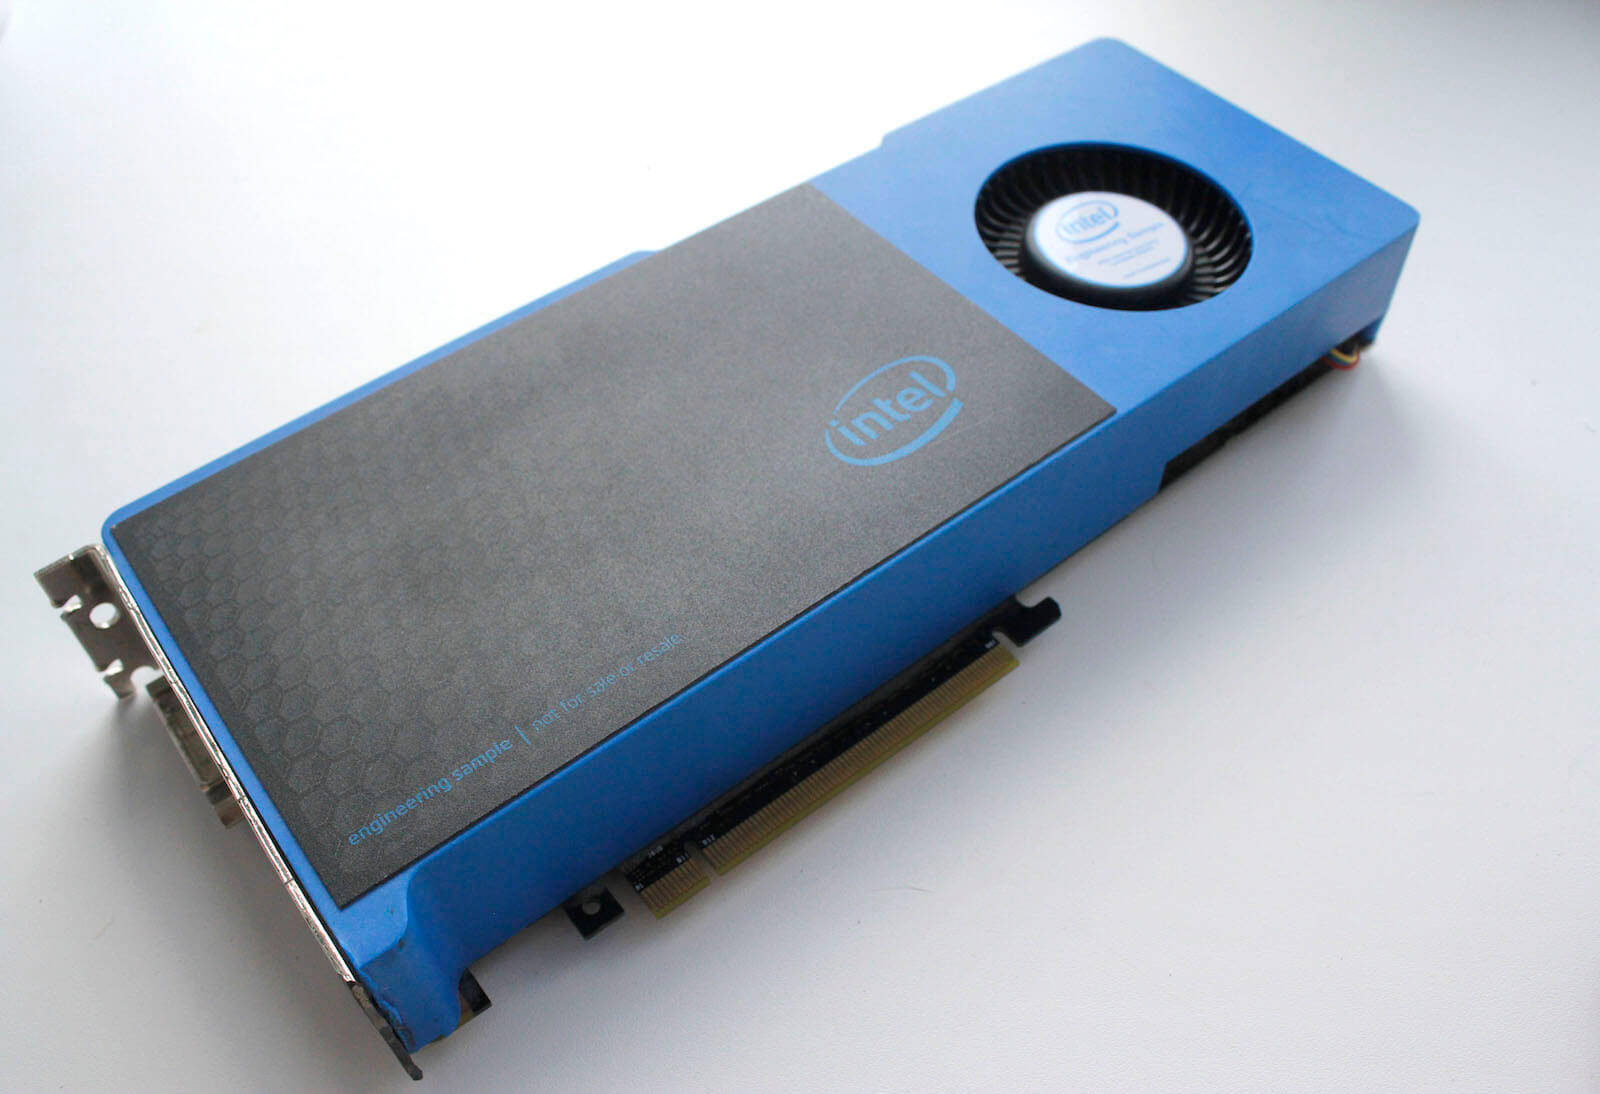 Intel To Power Up Its First Discrete GPU Confirmed For 2020 Launch